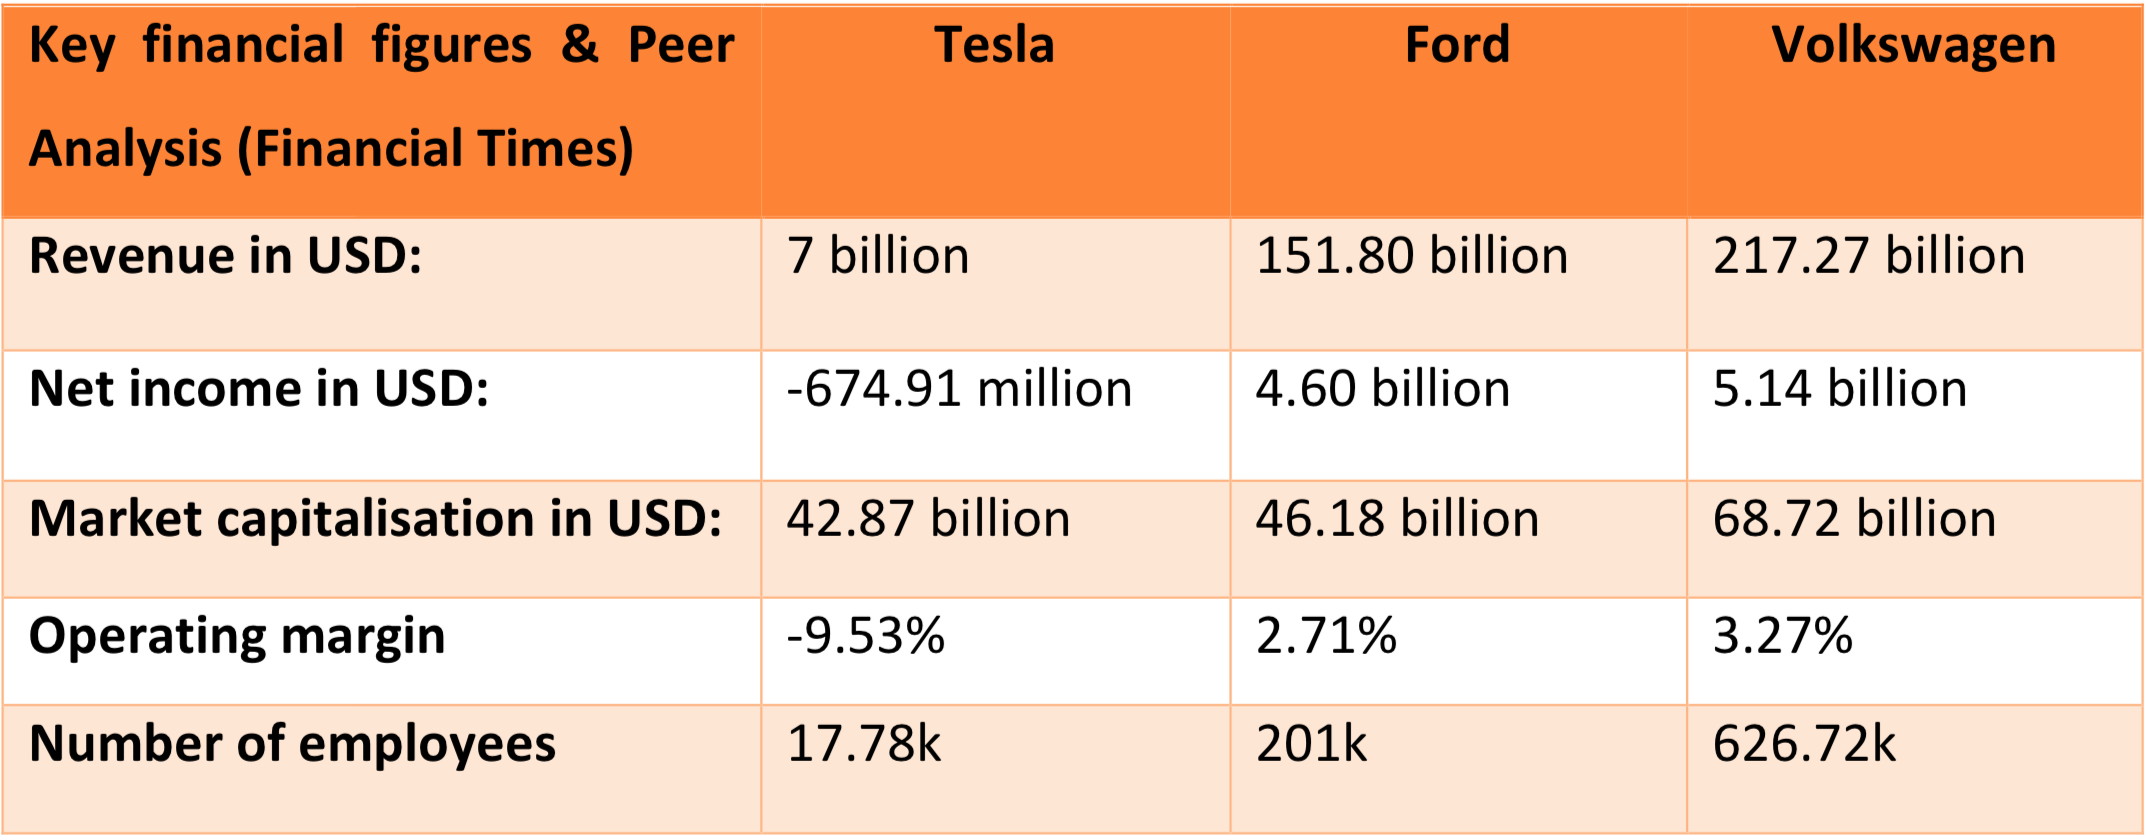 This presence is met with high customer engagement, as most purchases have been conducted online (Tesla Annual Report, 2016).